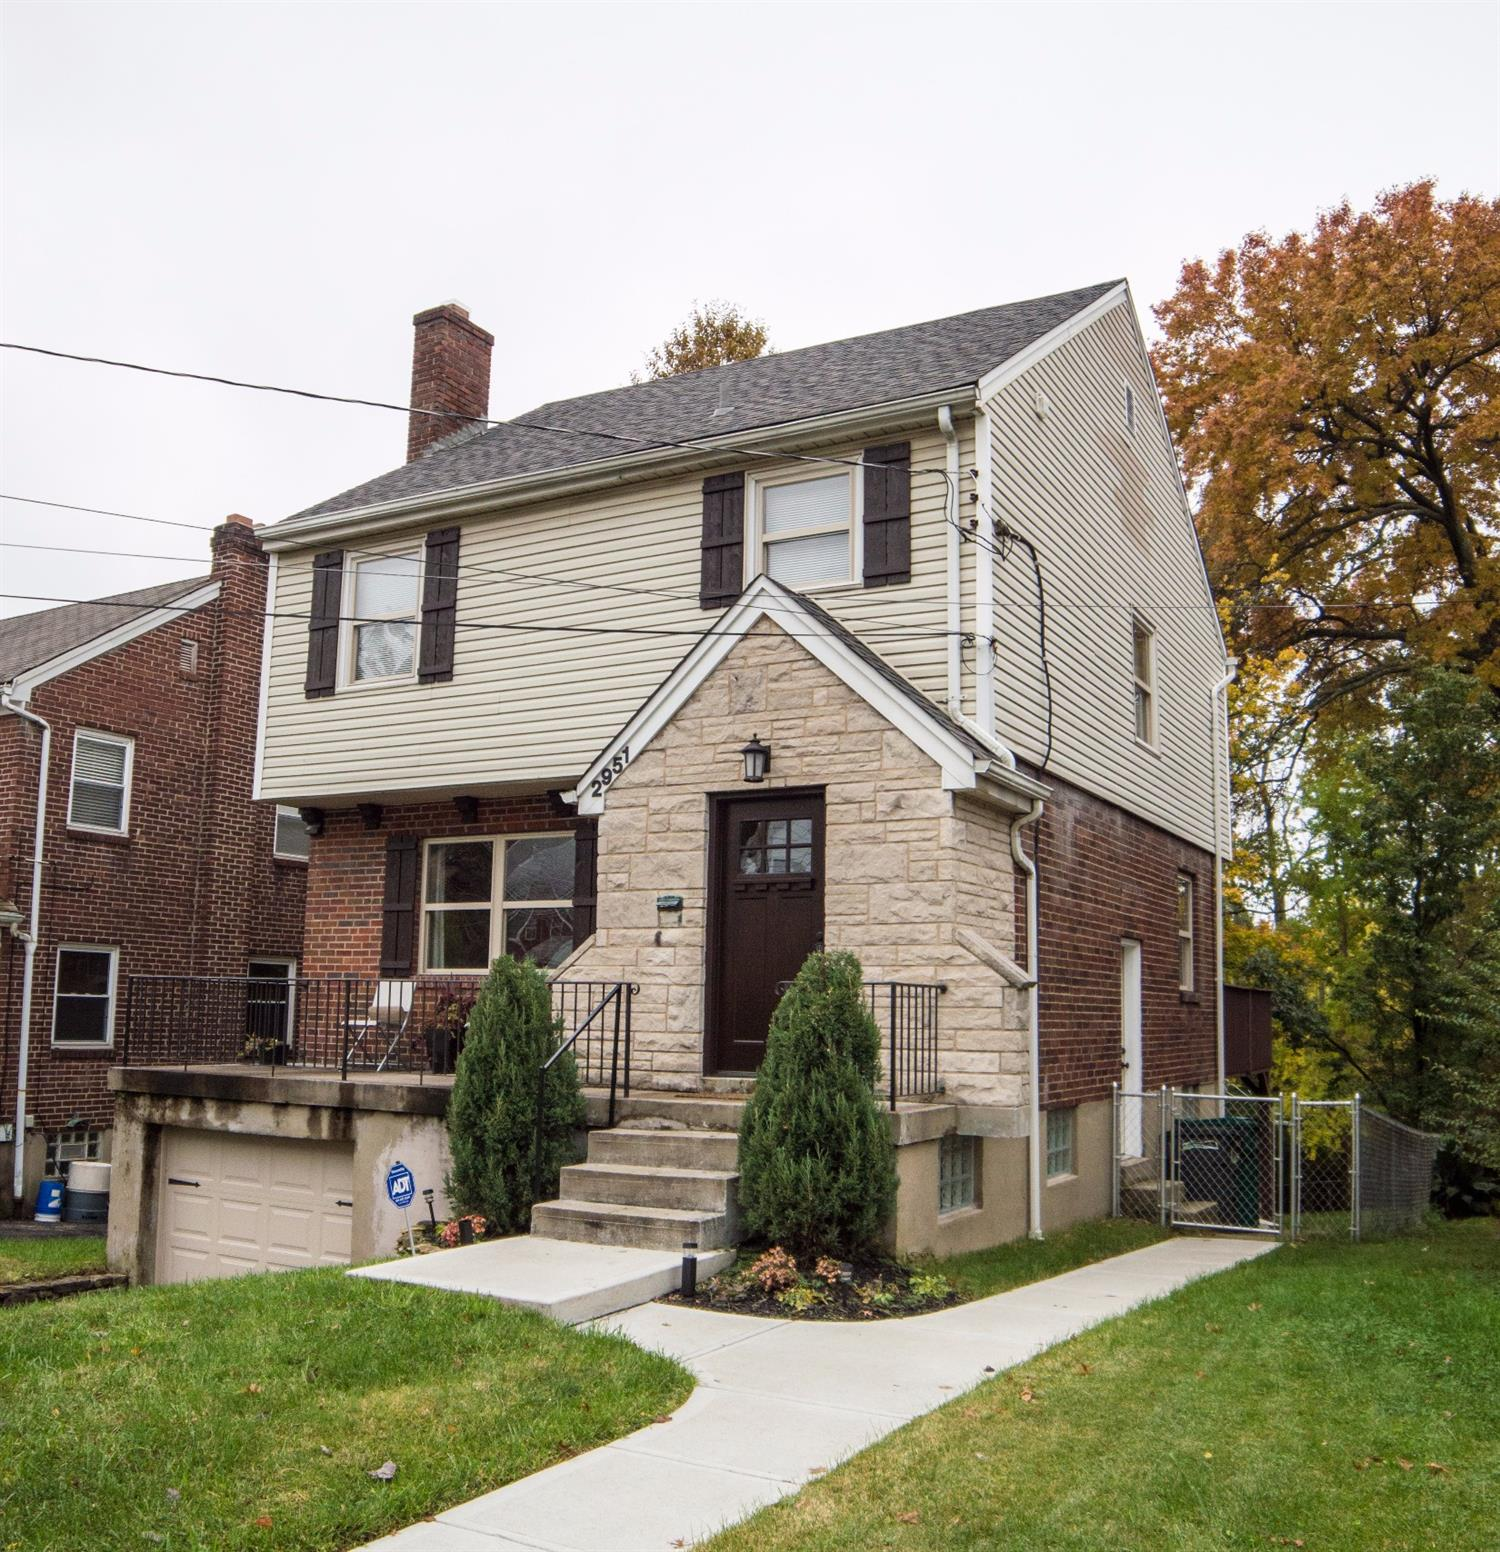 Charming two story, completely updated with all permits being pulled. Granite counter tops, gorgeous 42 cabinets, remodeled bathroom. Newer roof and all mechanics. Large fenced rear yard. Come have a look